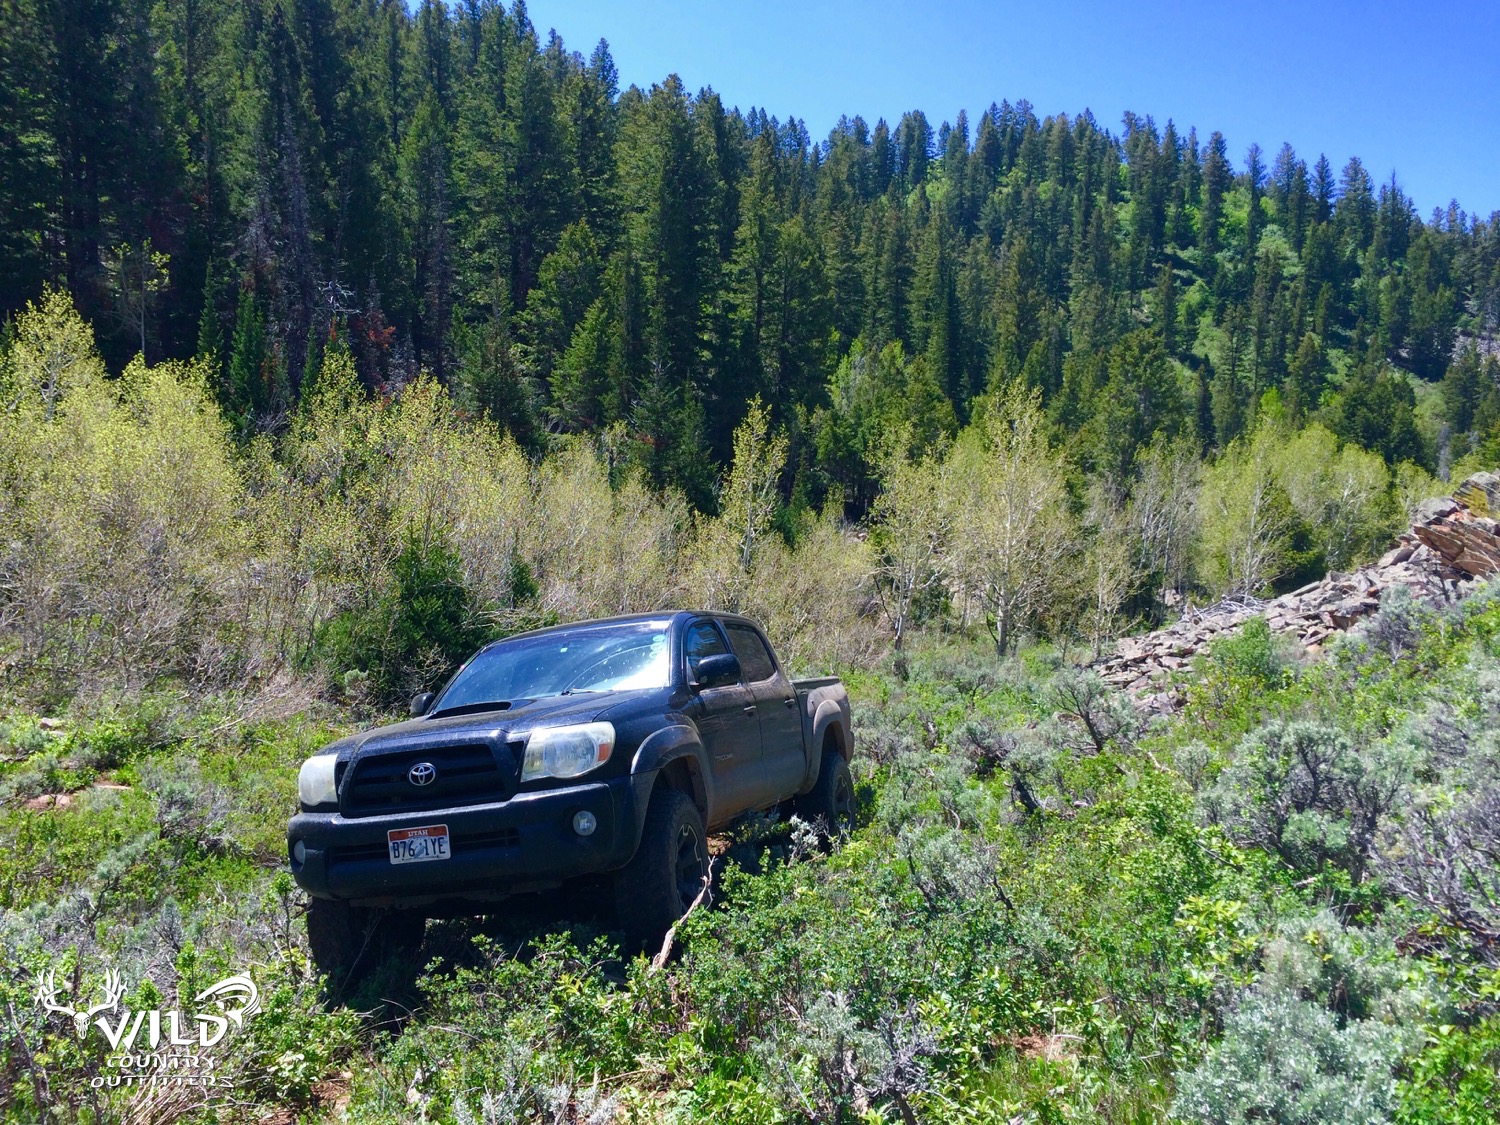 desere ranch toyota tacoma rocky moutains.jpg